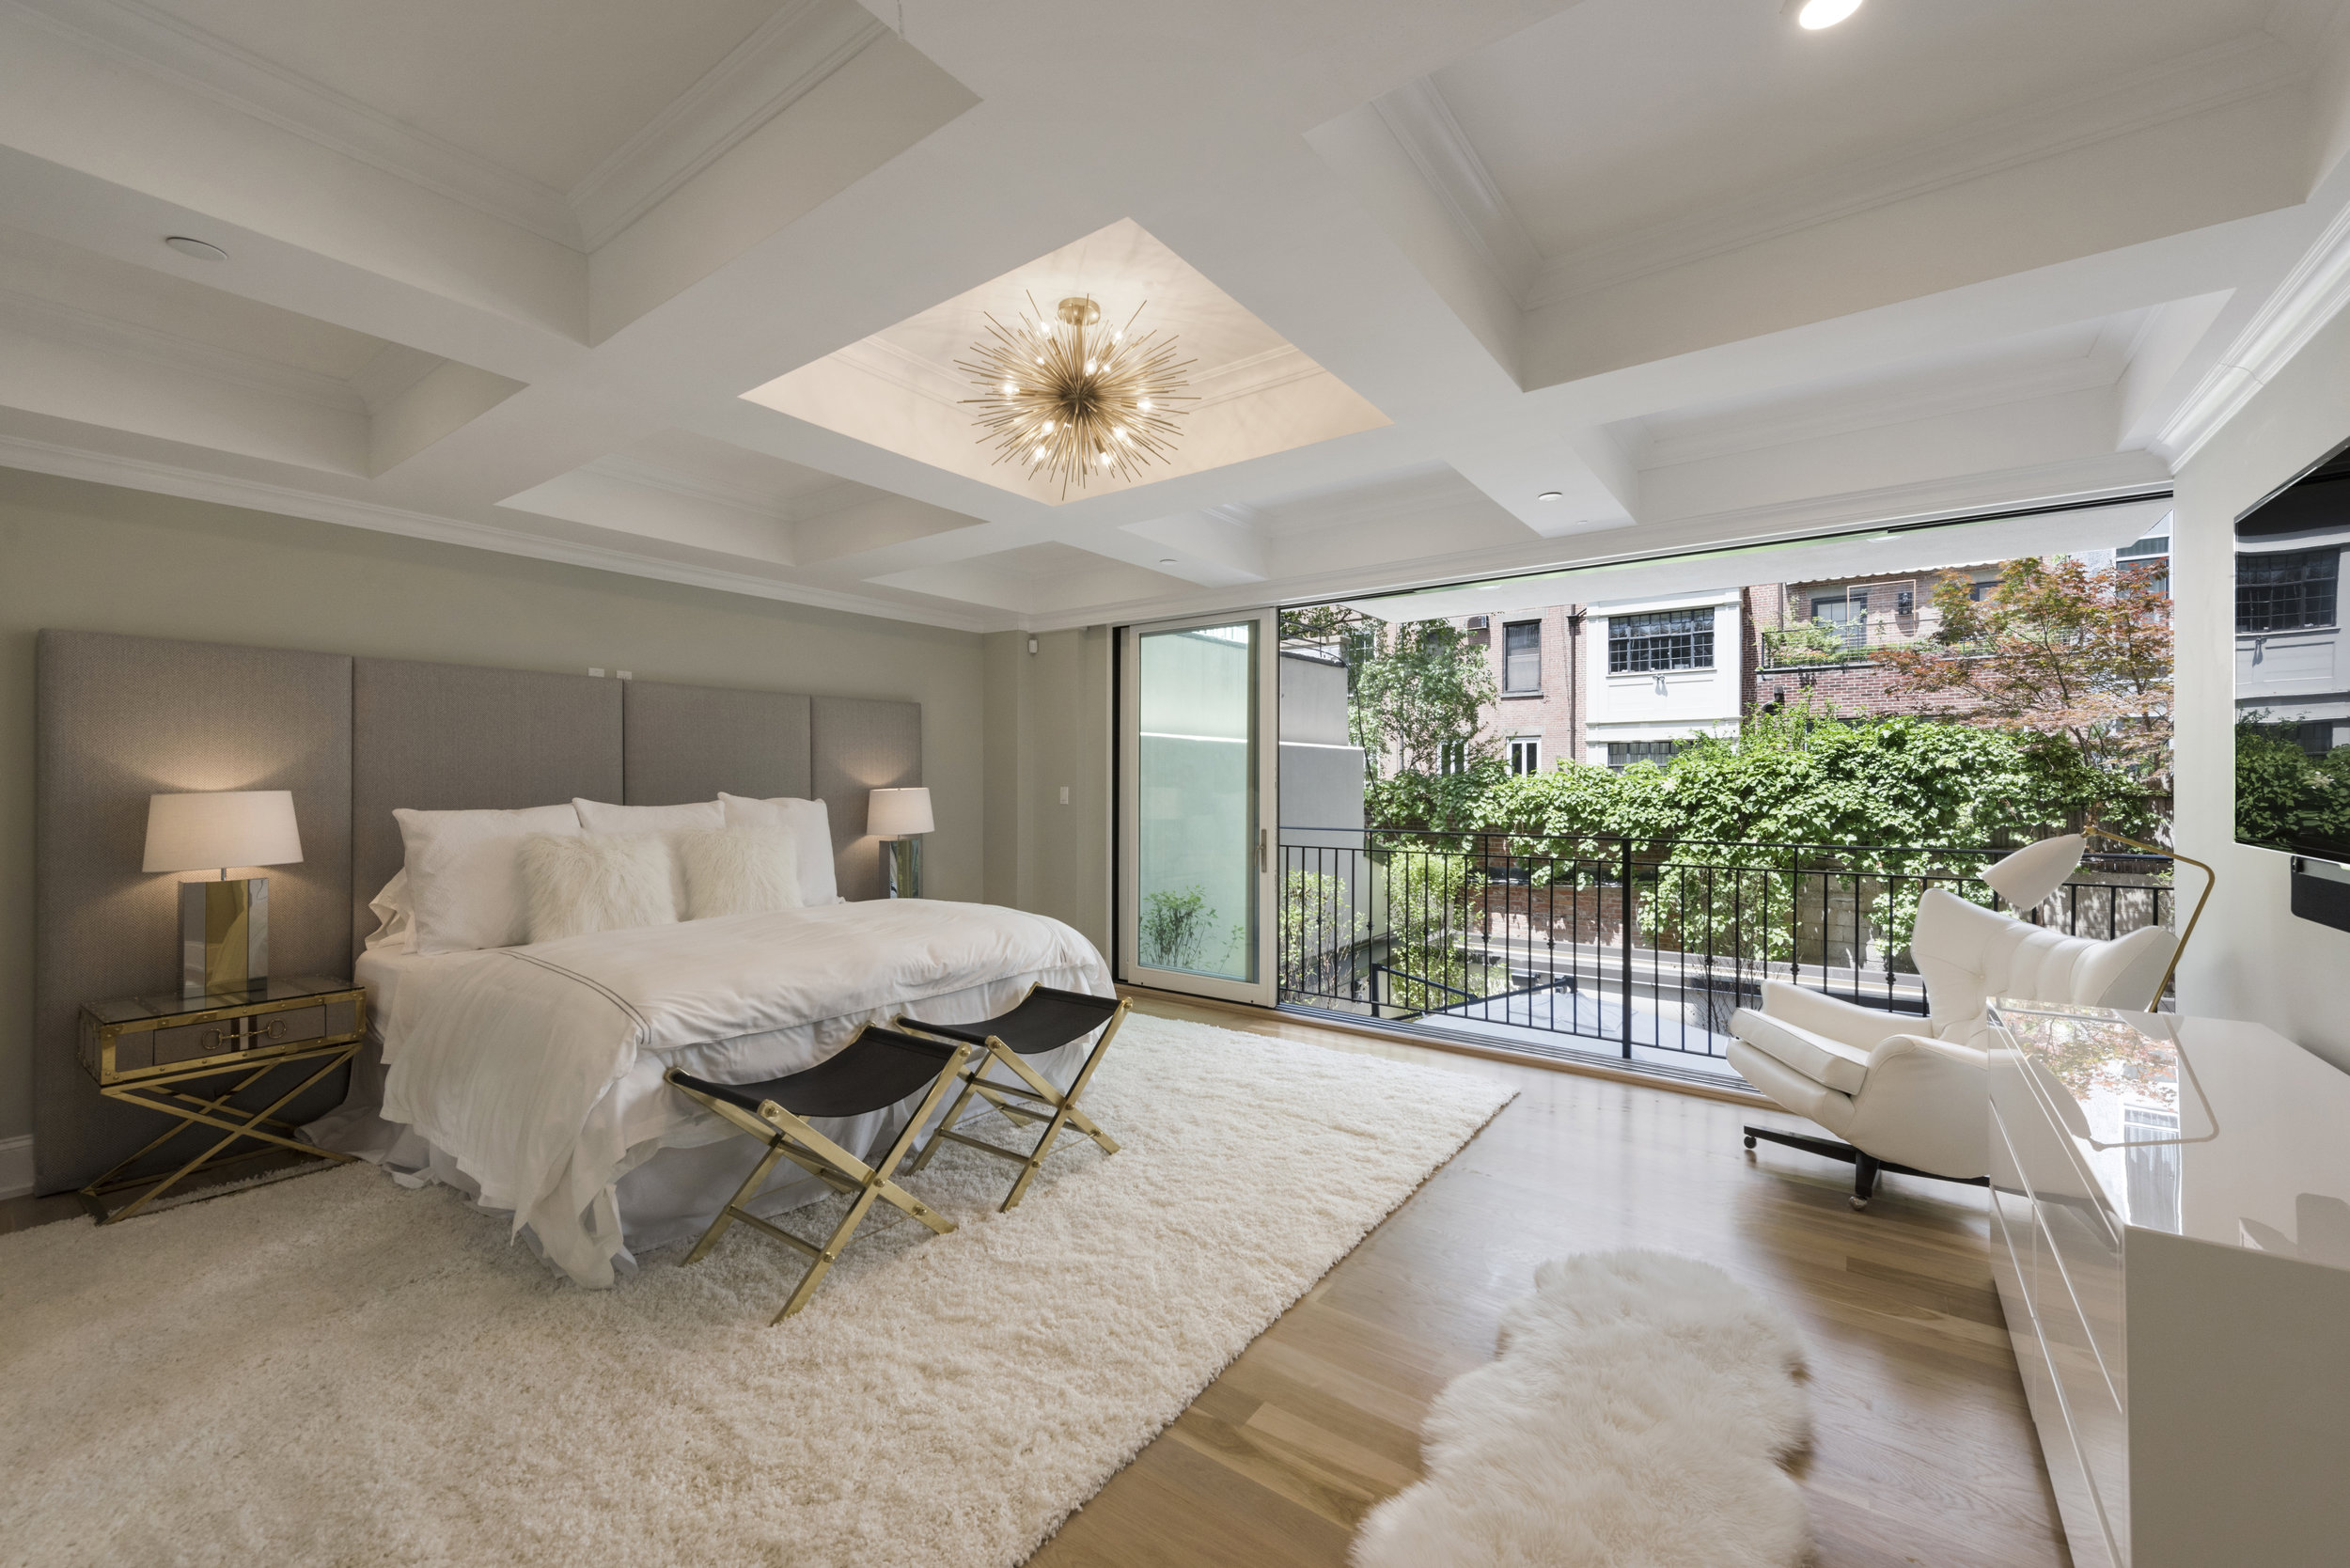 227 East 67th Street Apt 1__7.jpg